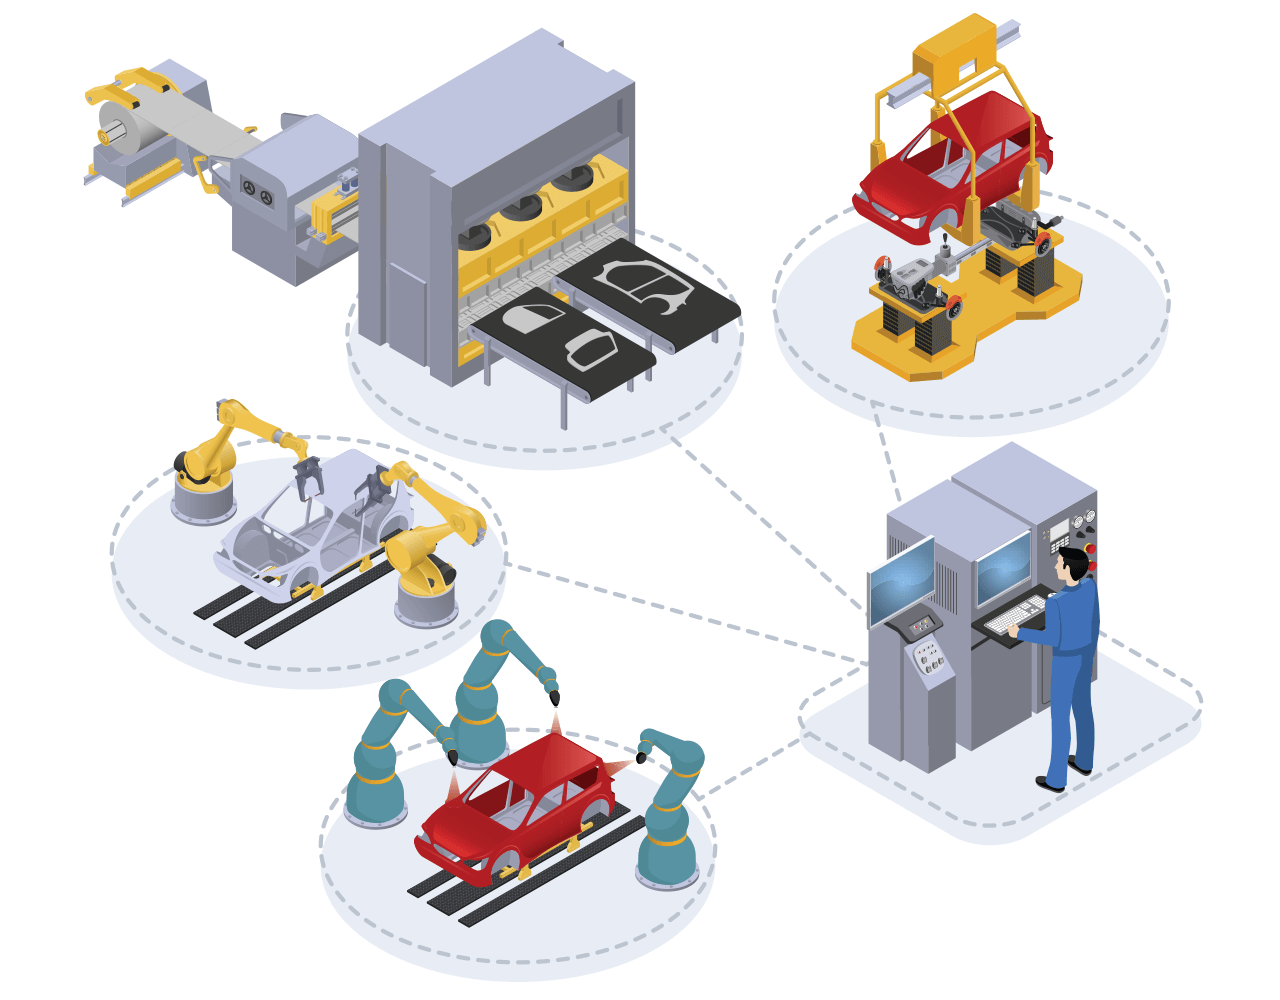 The latency in an IoT deployment is the amount of time between when an IoT sensor starts sending data and when an action is taken on the data.